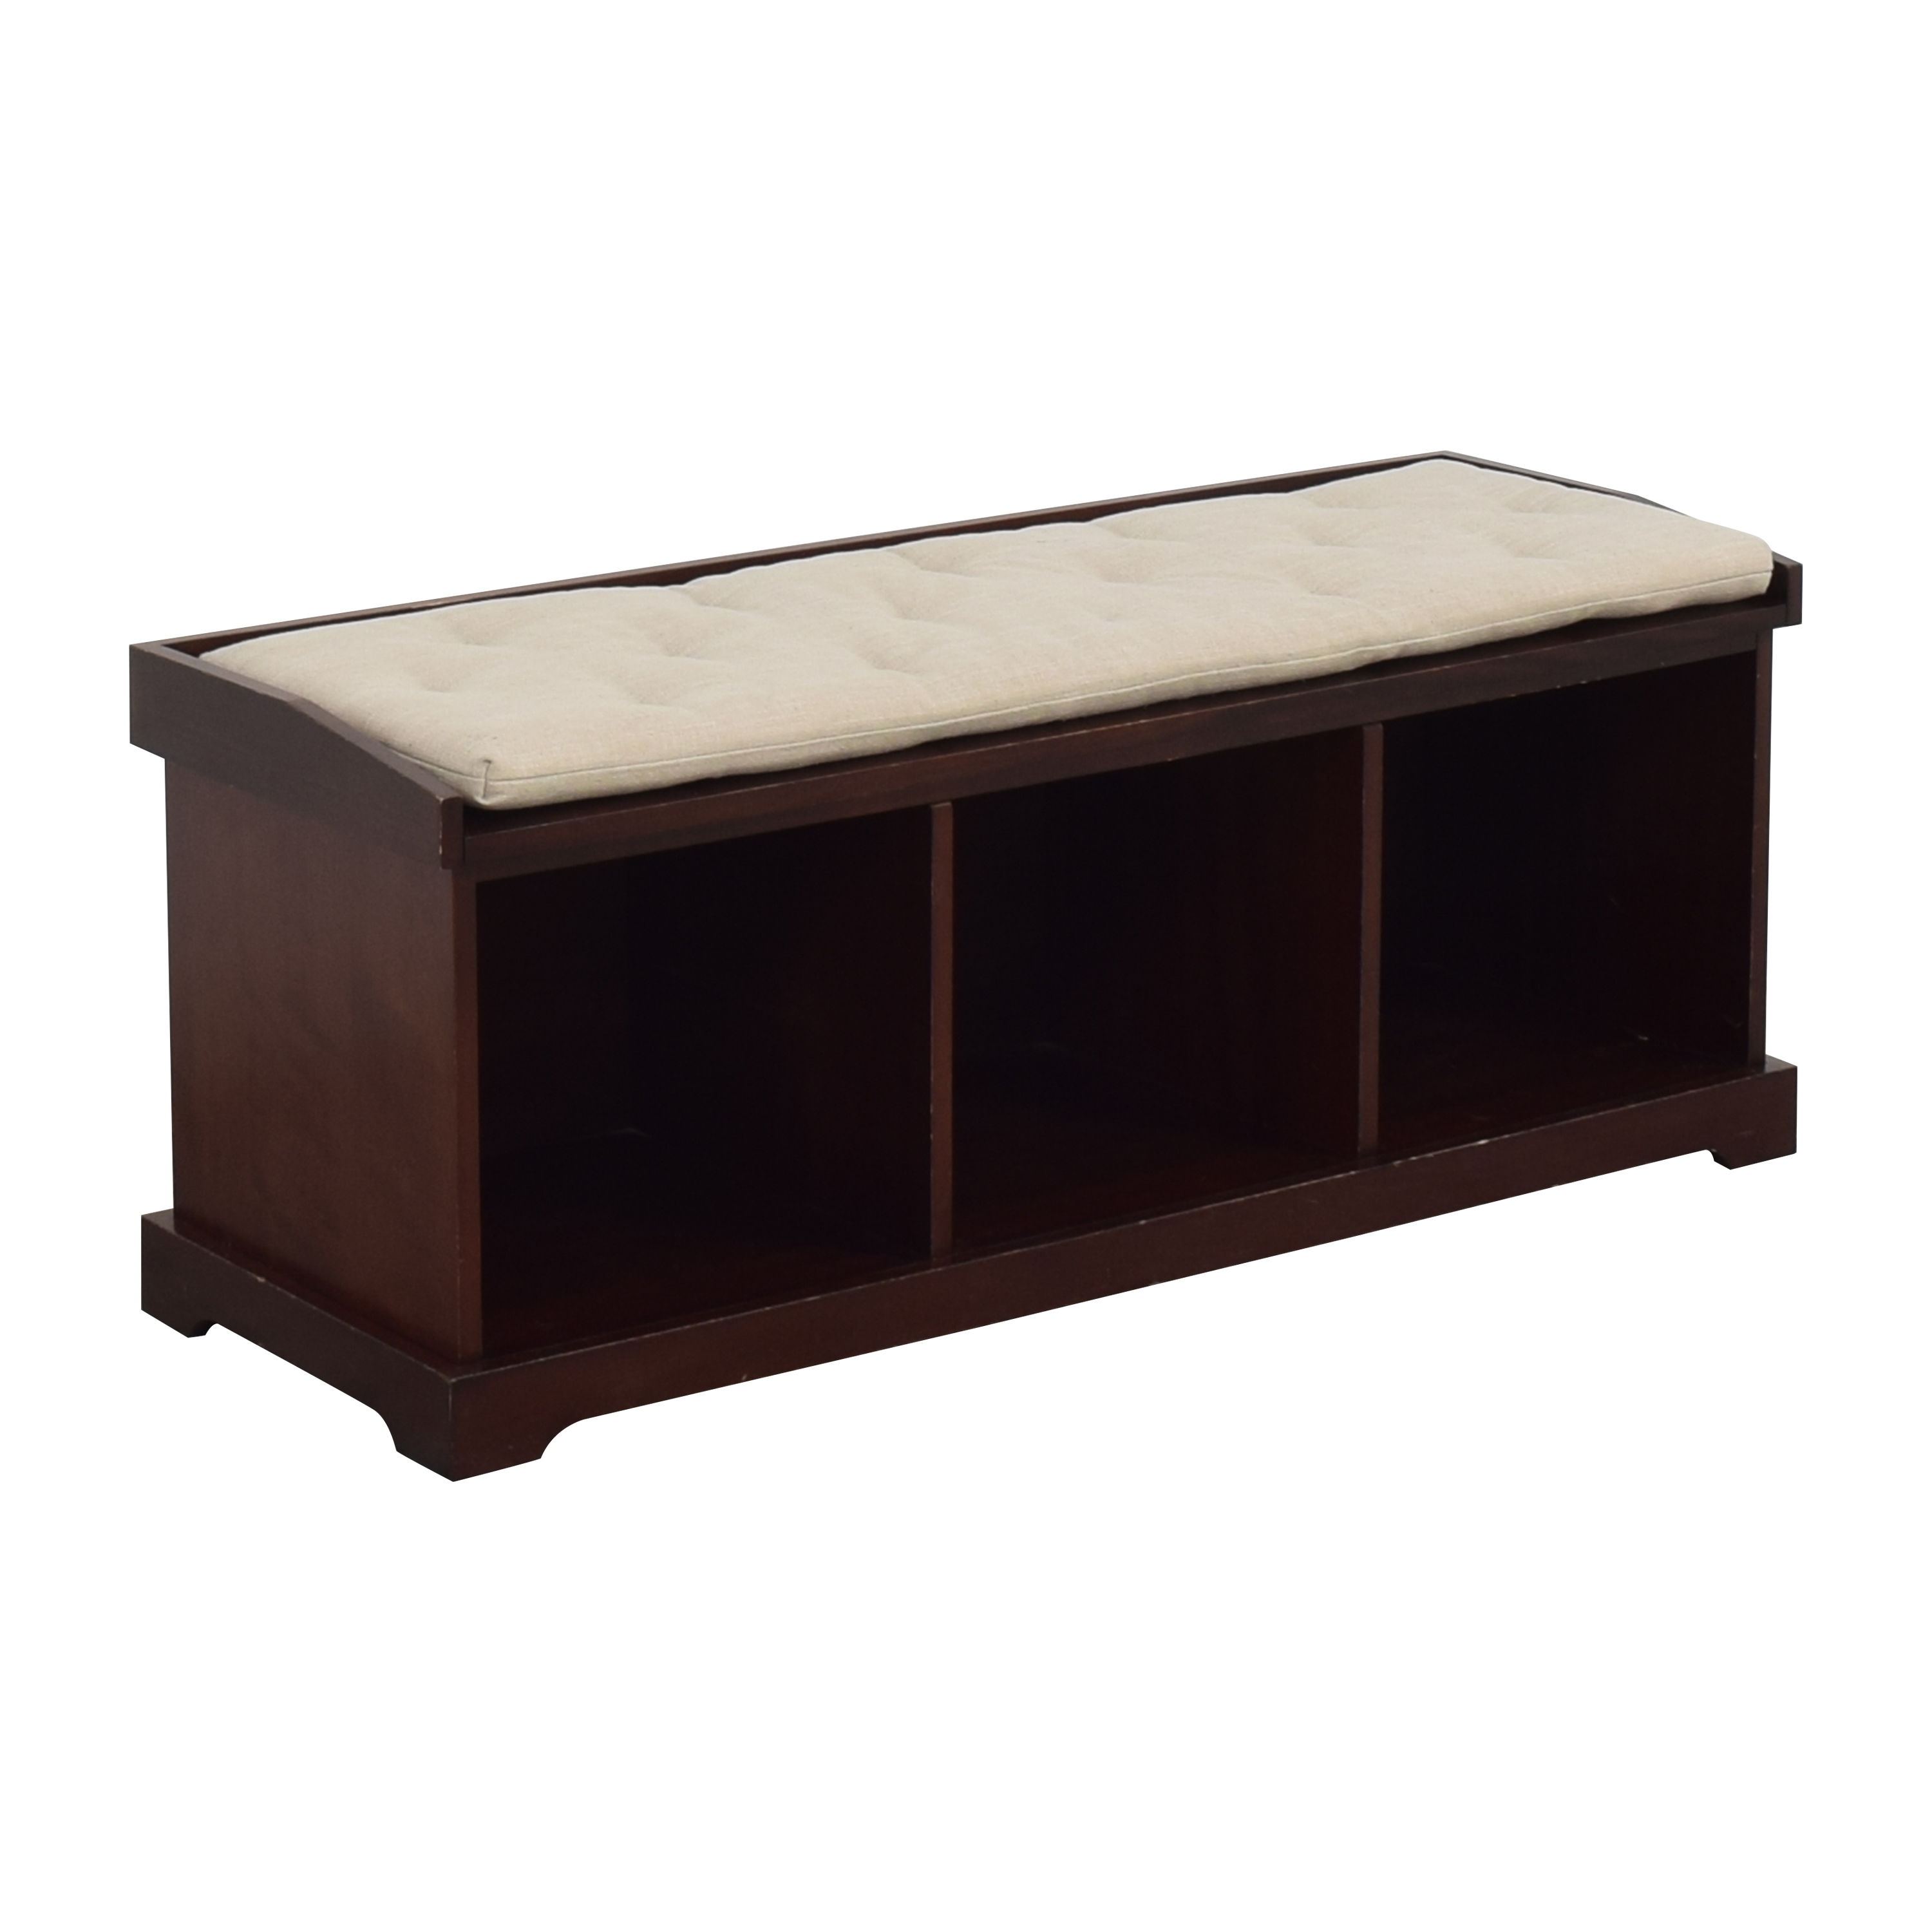 shop Pottery Barn Pottery Barn Entryway Storage Bench online